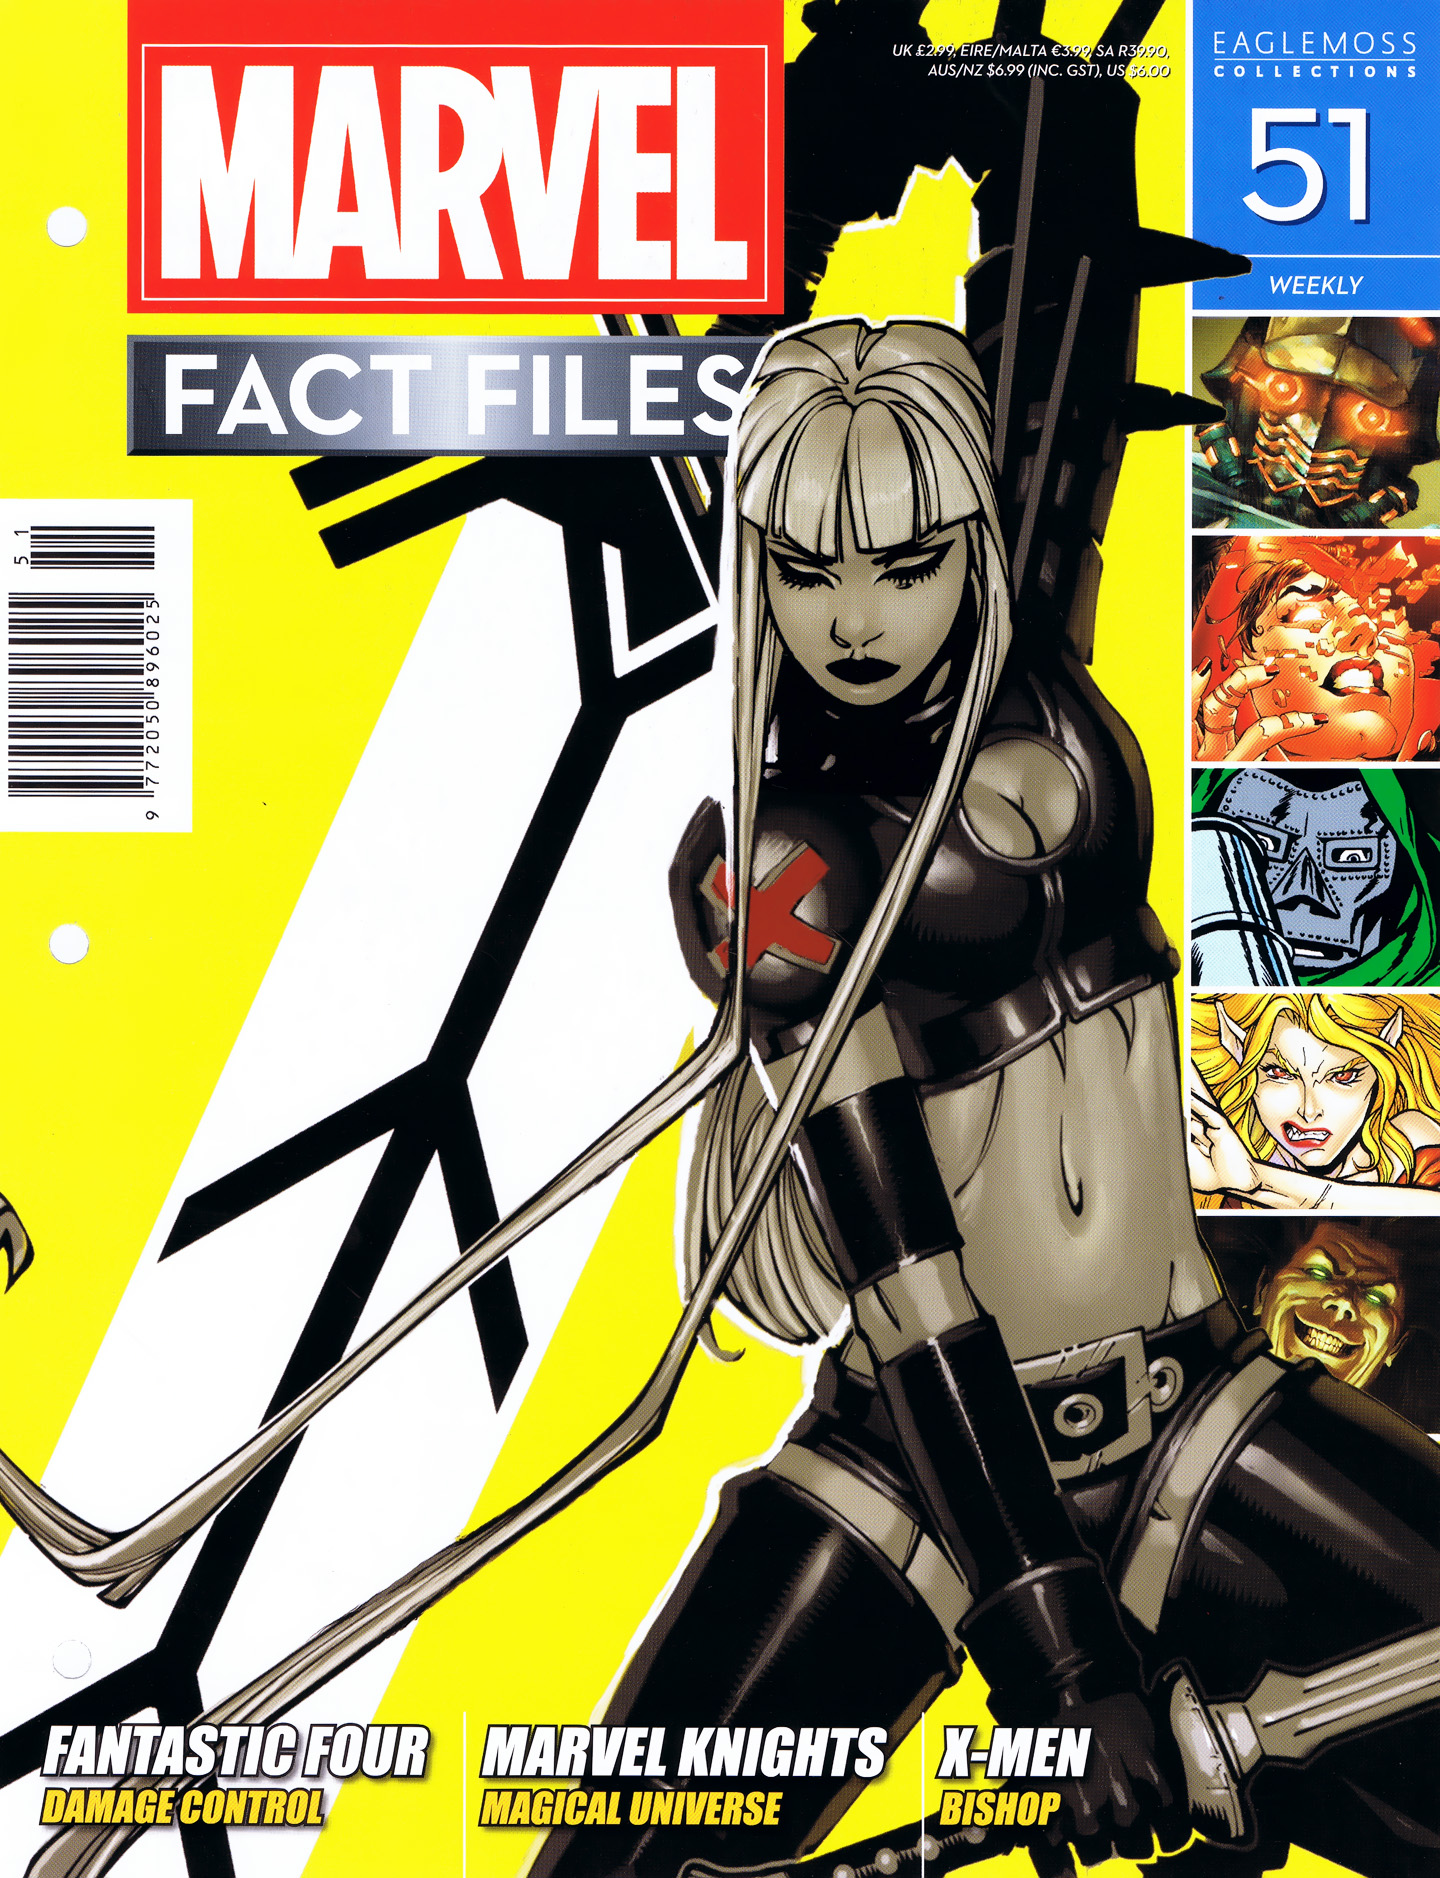 Marvel Fact Files 51 Page 1